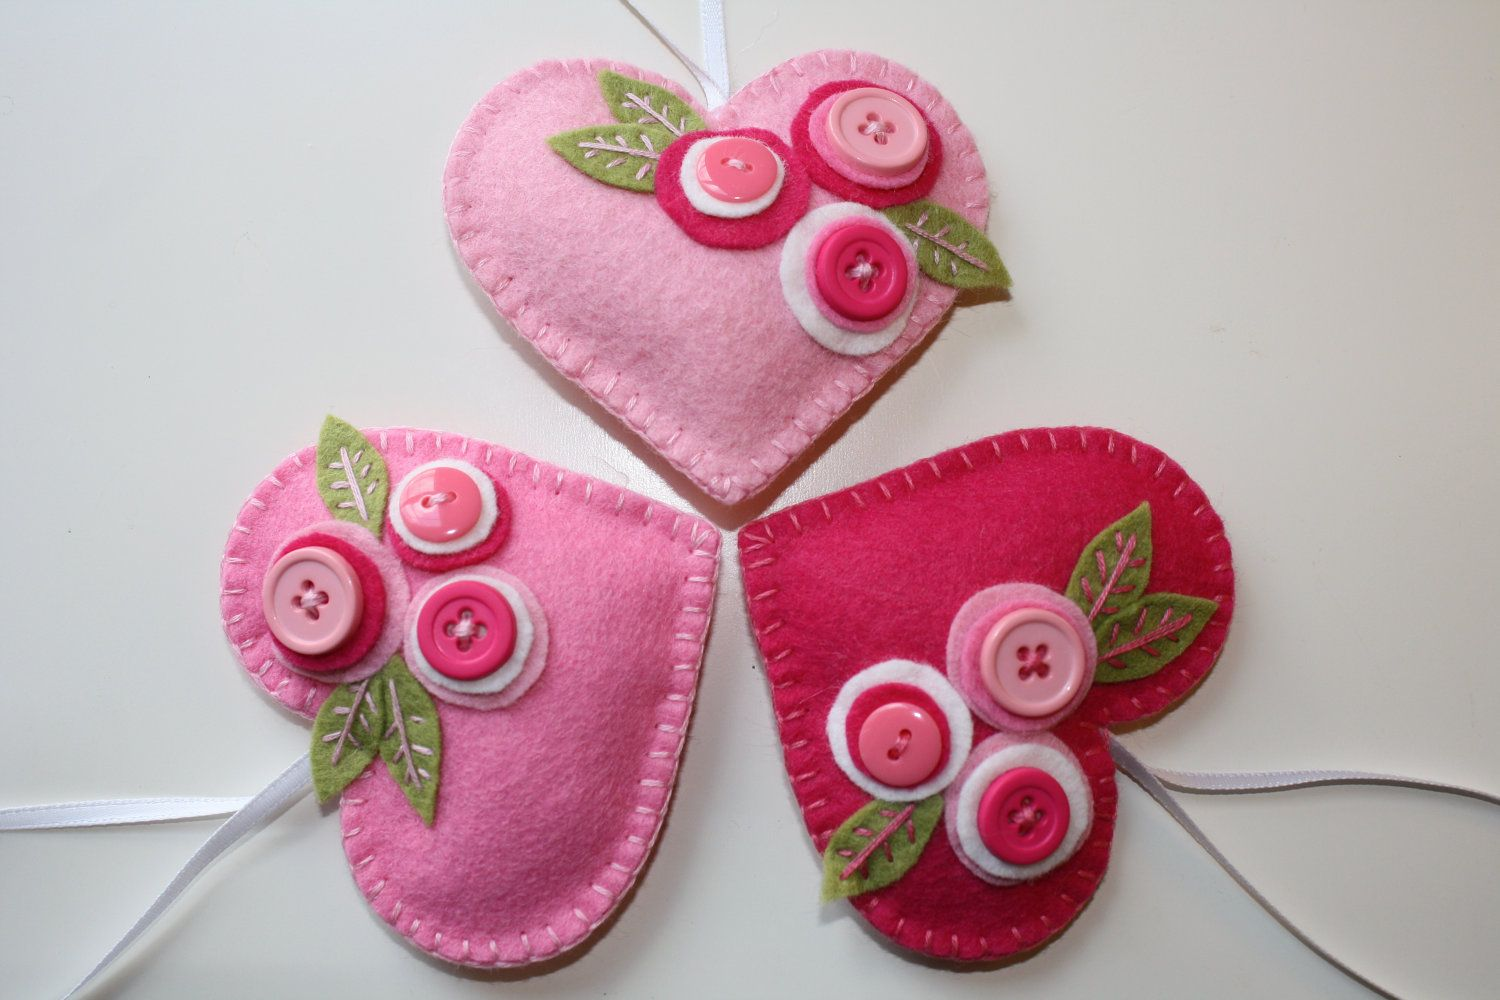 felt crafts ideas these felt hearts felt and wool wonders 2003